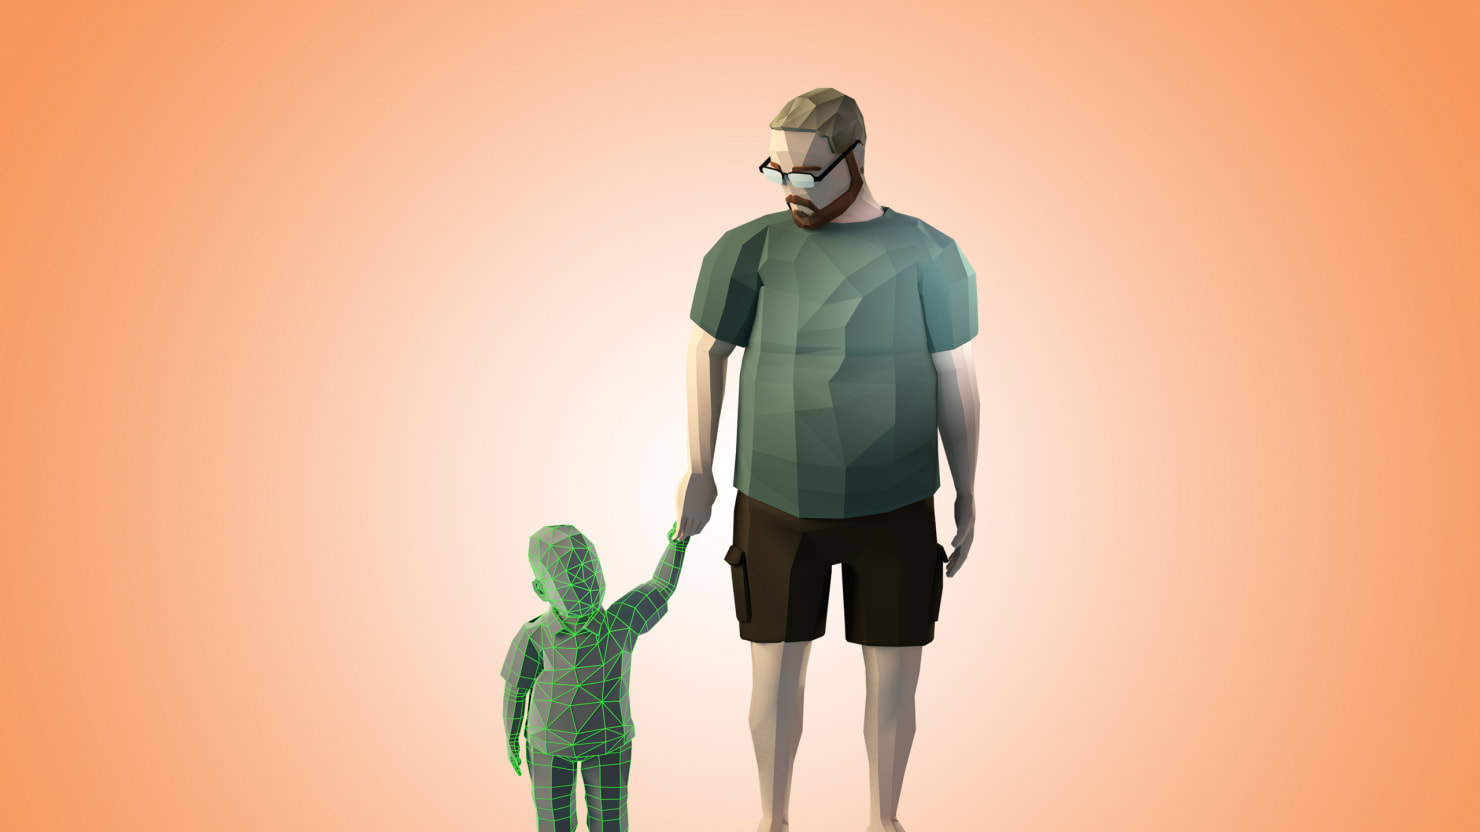 How a Father's Grief Over His Dying Son Became a Video Game